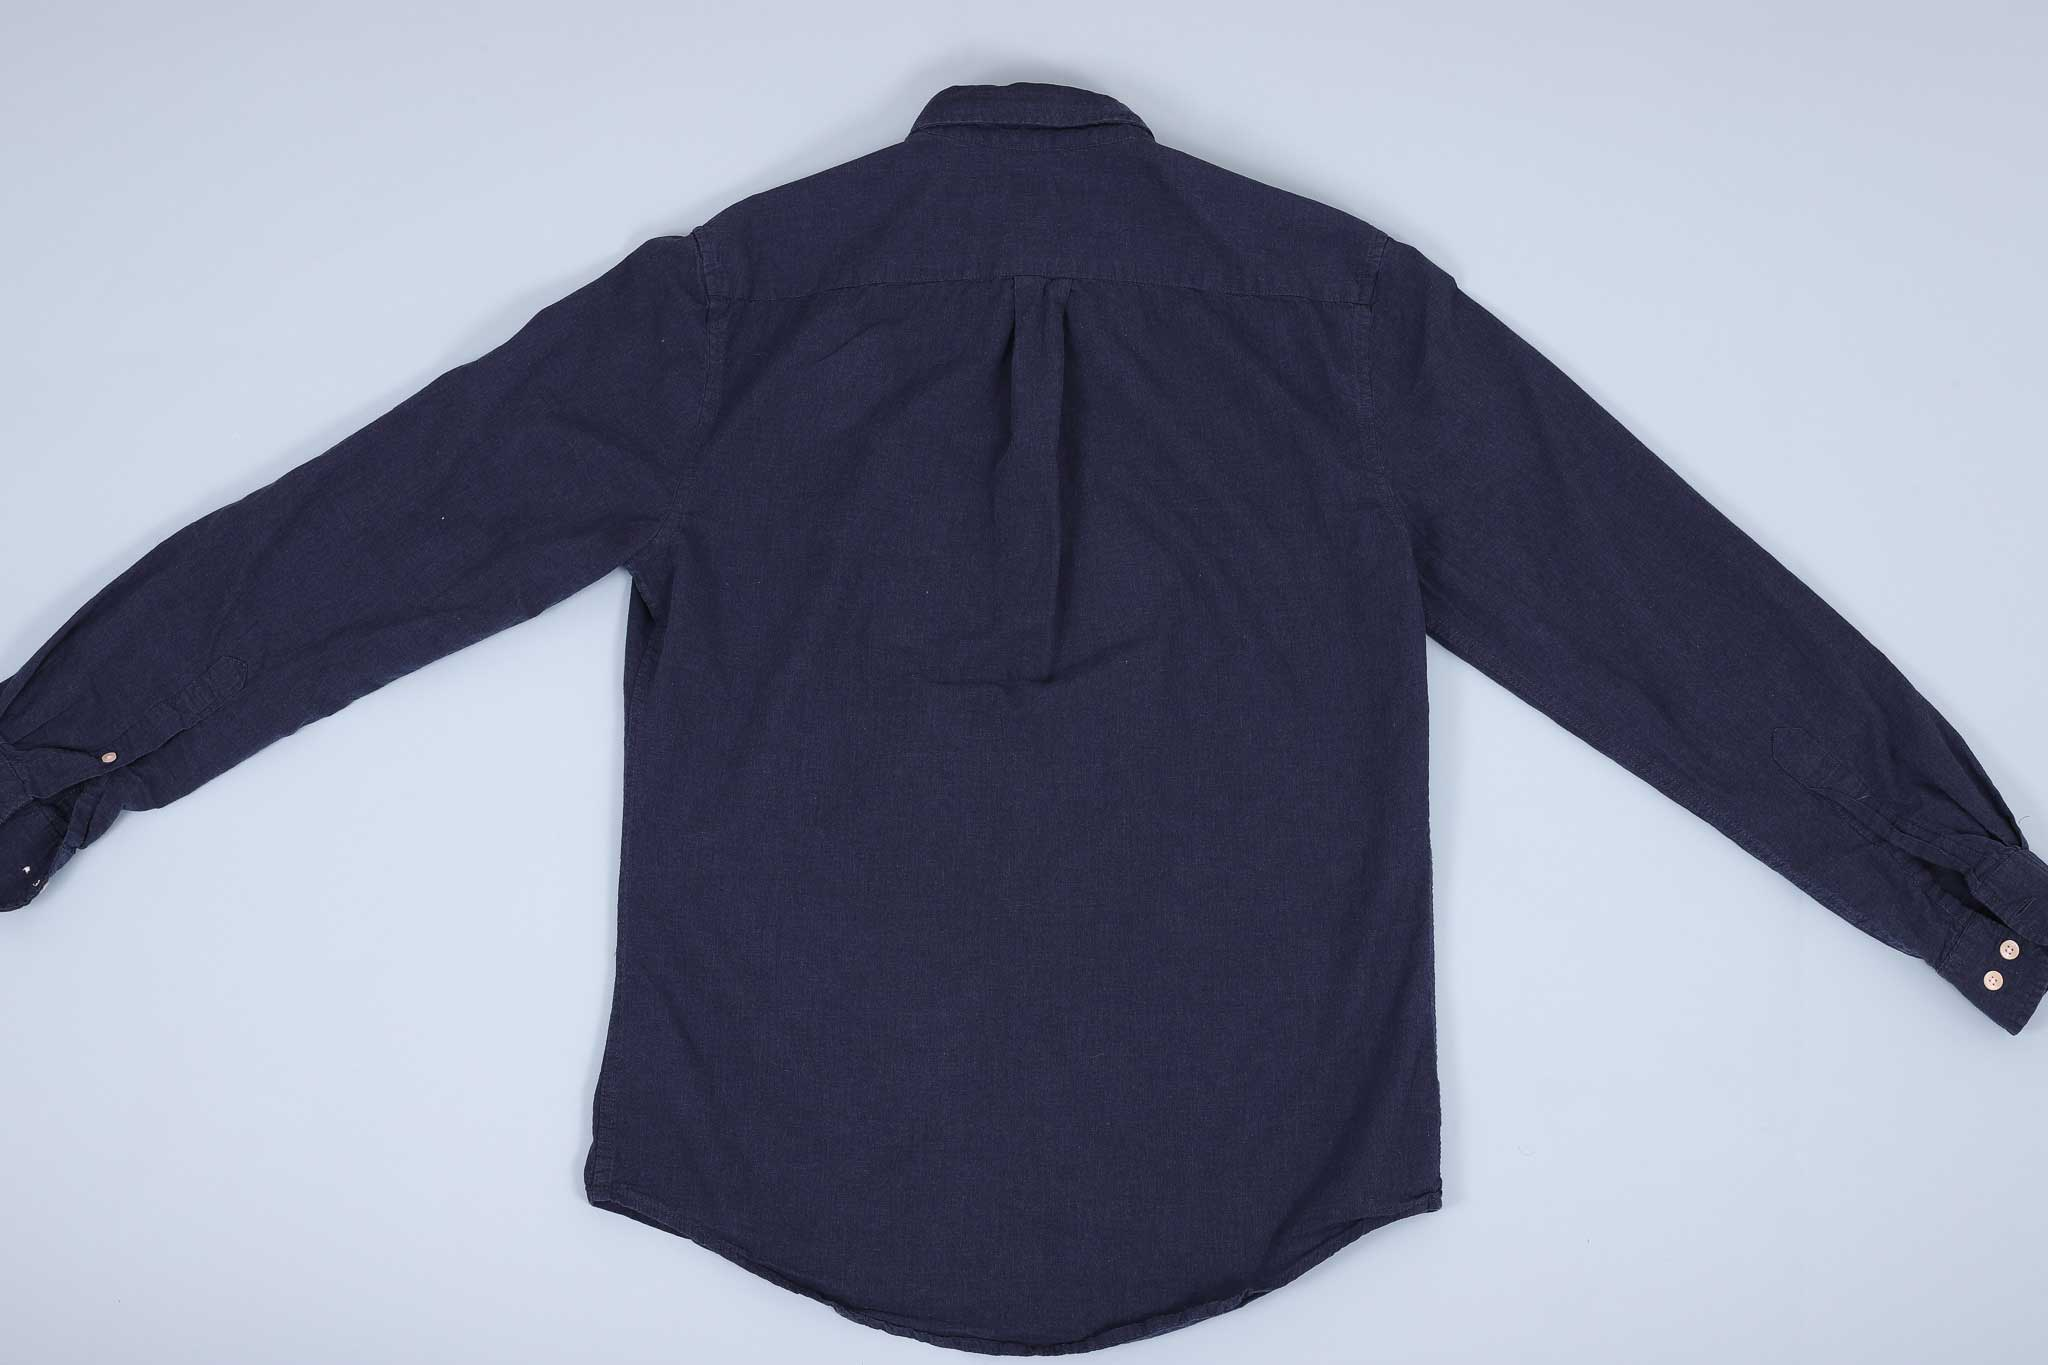 Navy buttoned up shirt spread out facing down against a light blue background